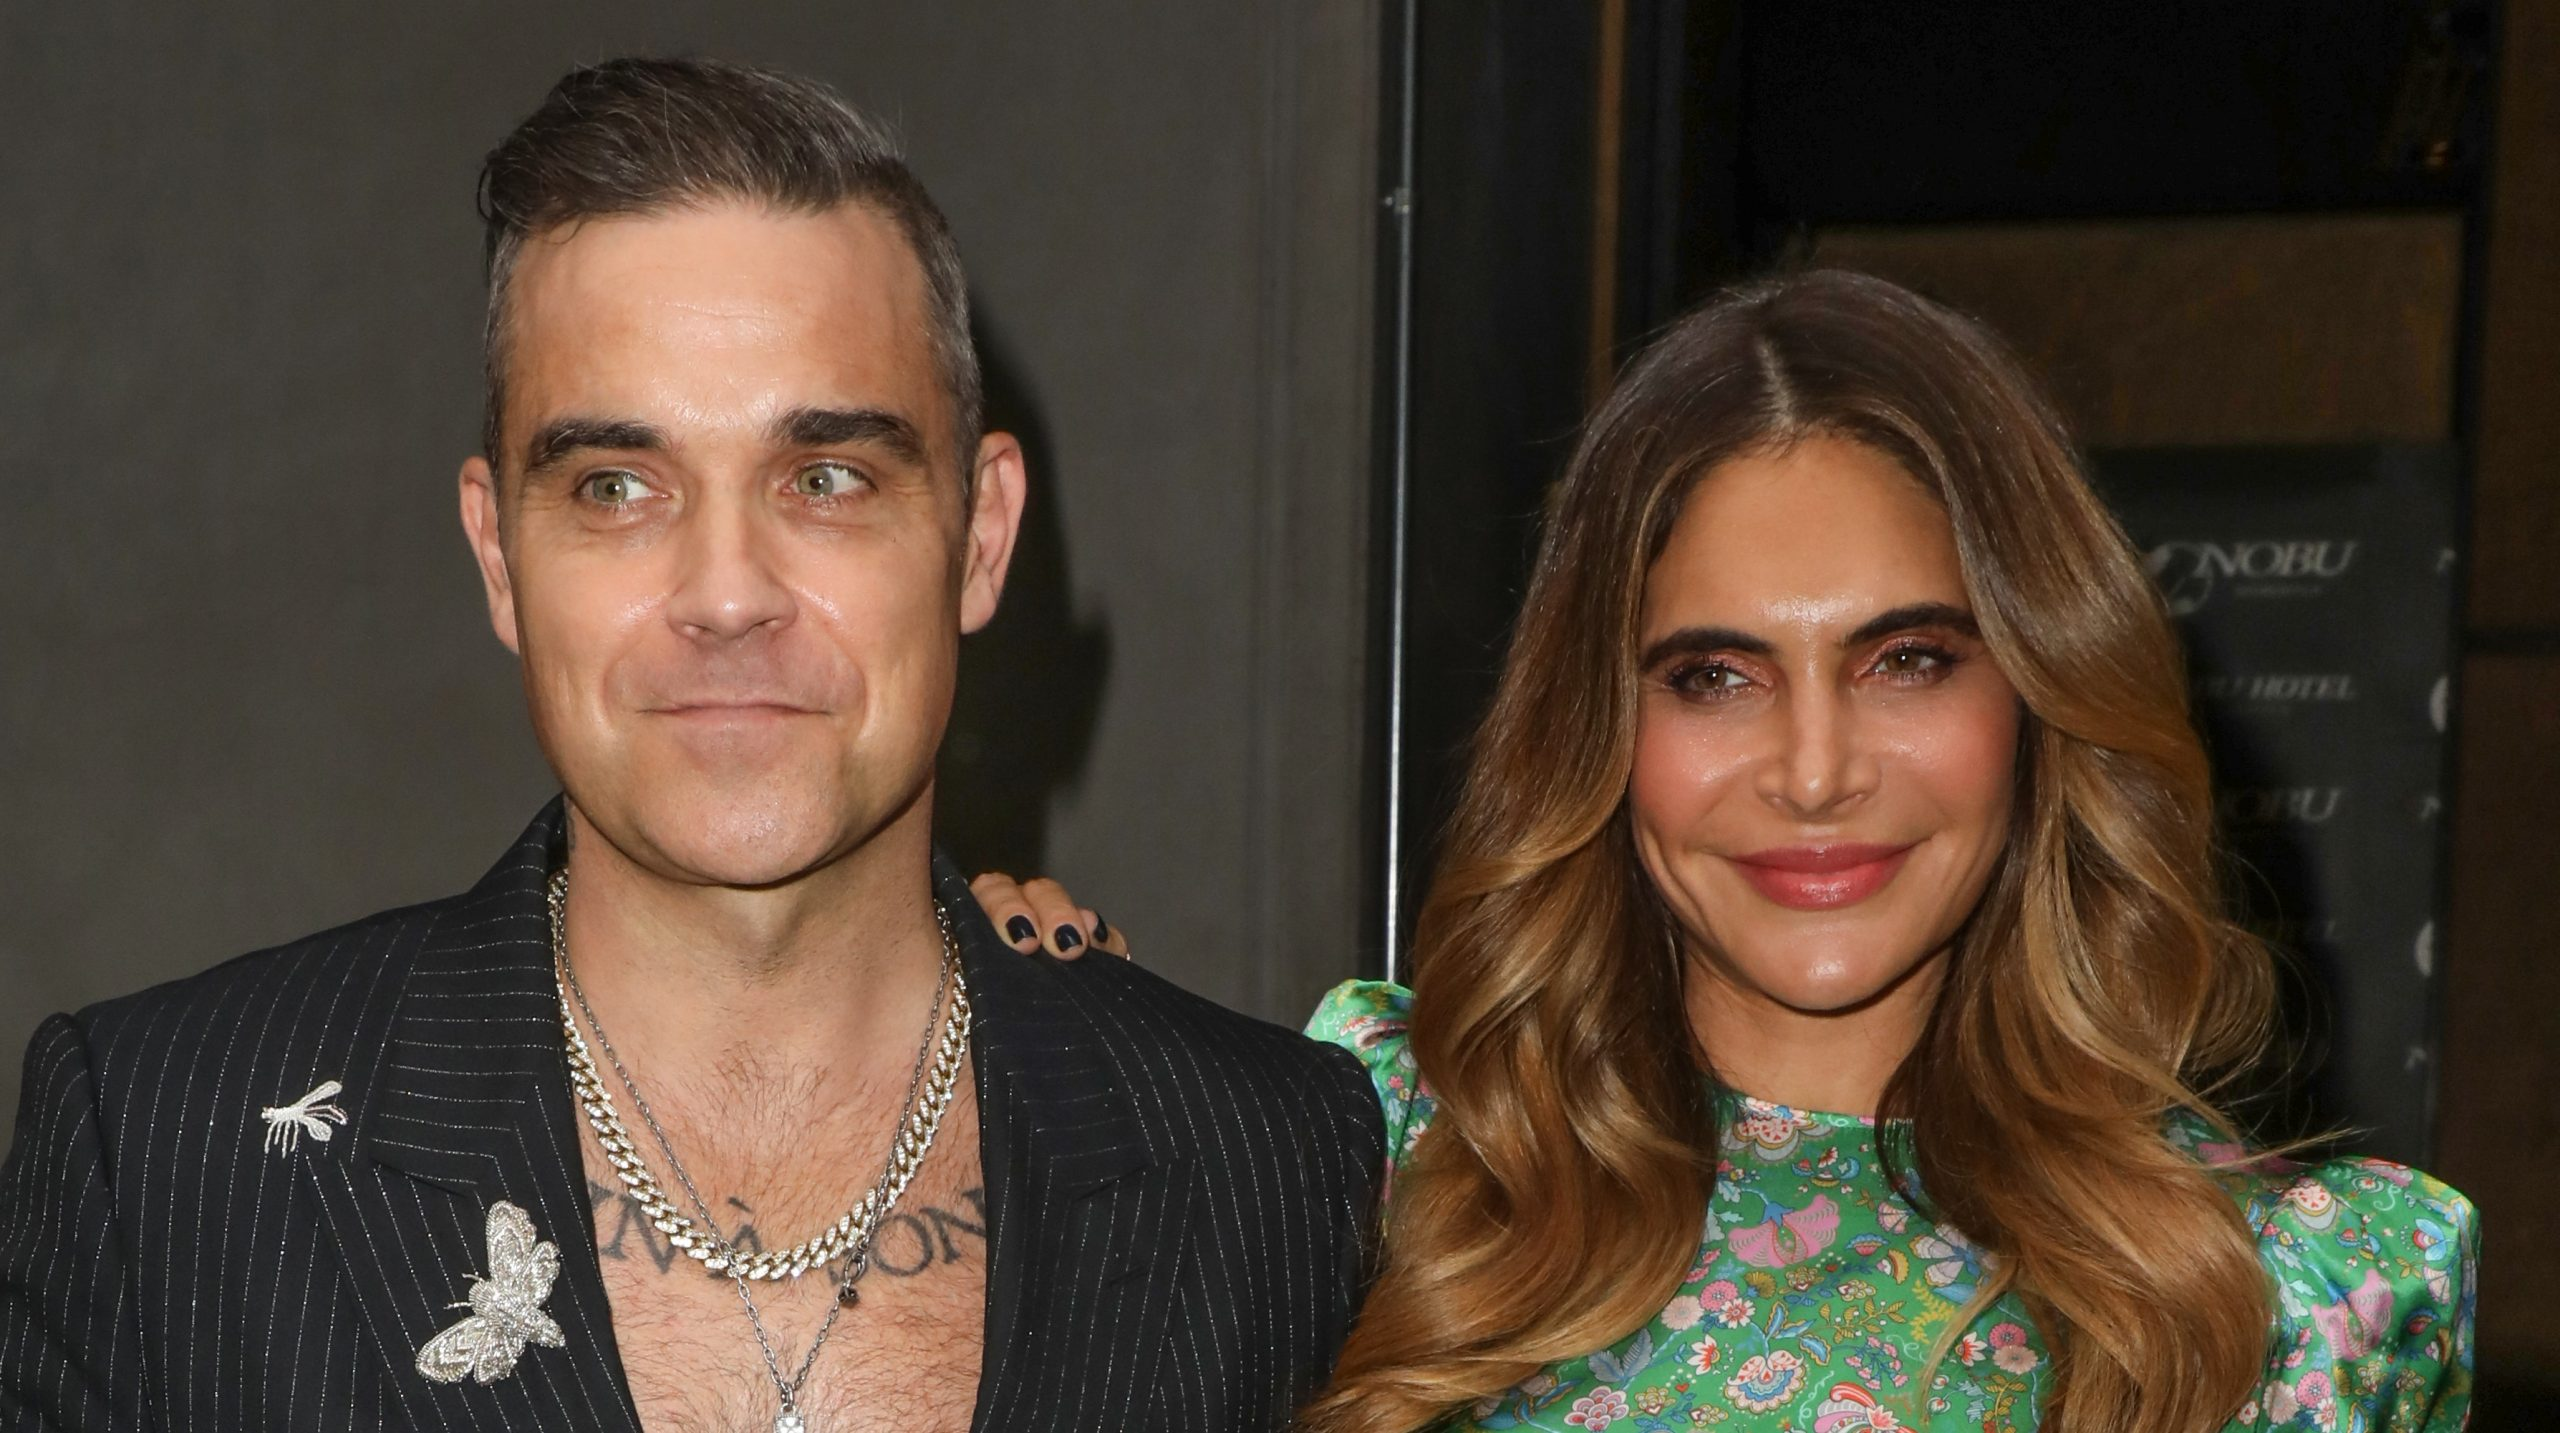 Robbie Williams and wife Ayda share baby news